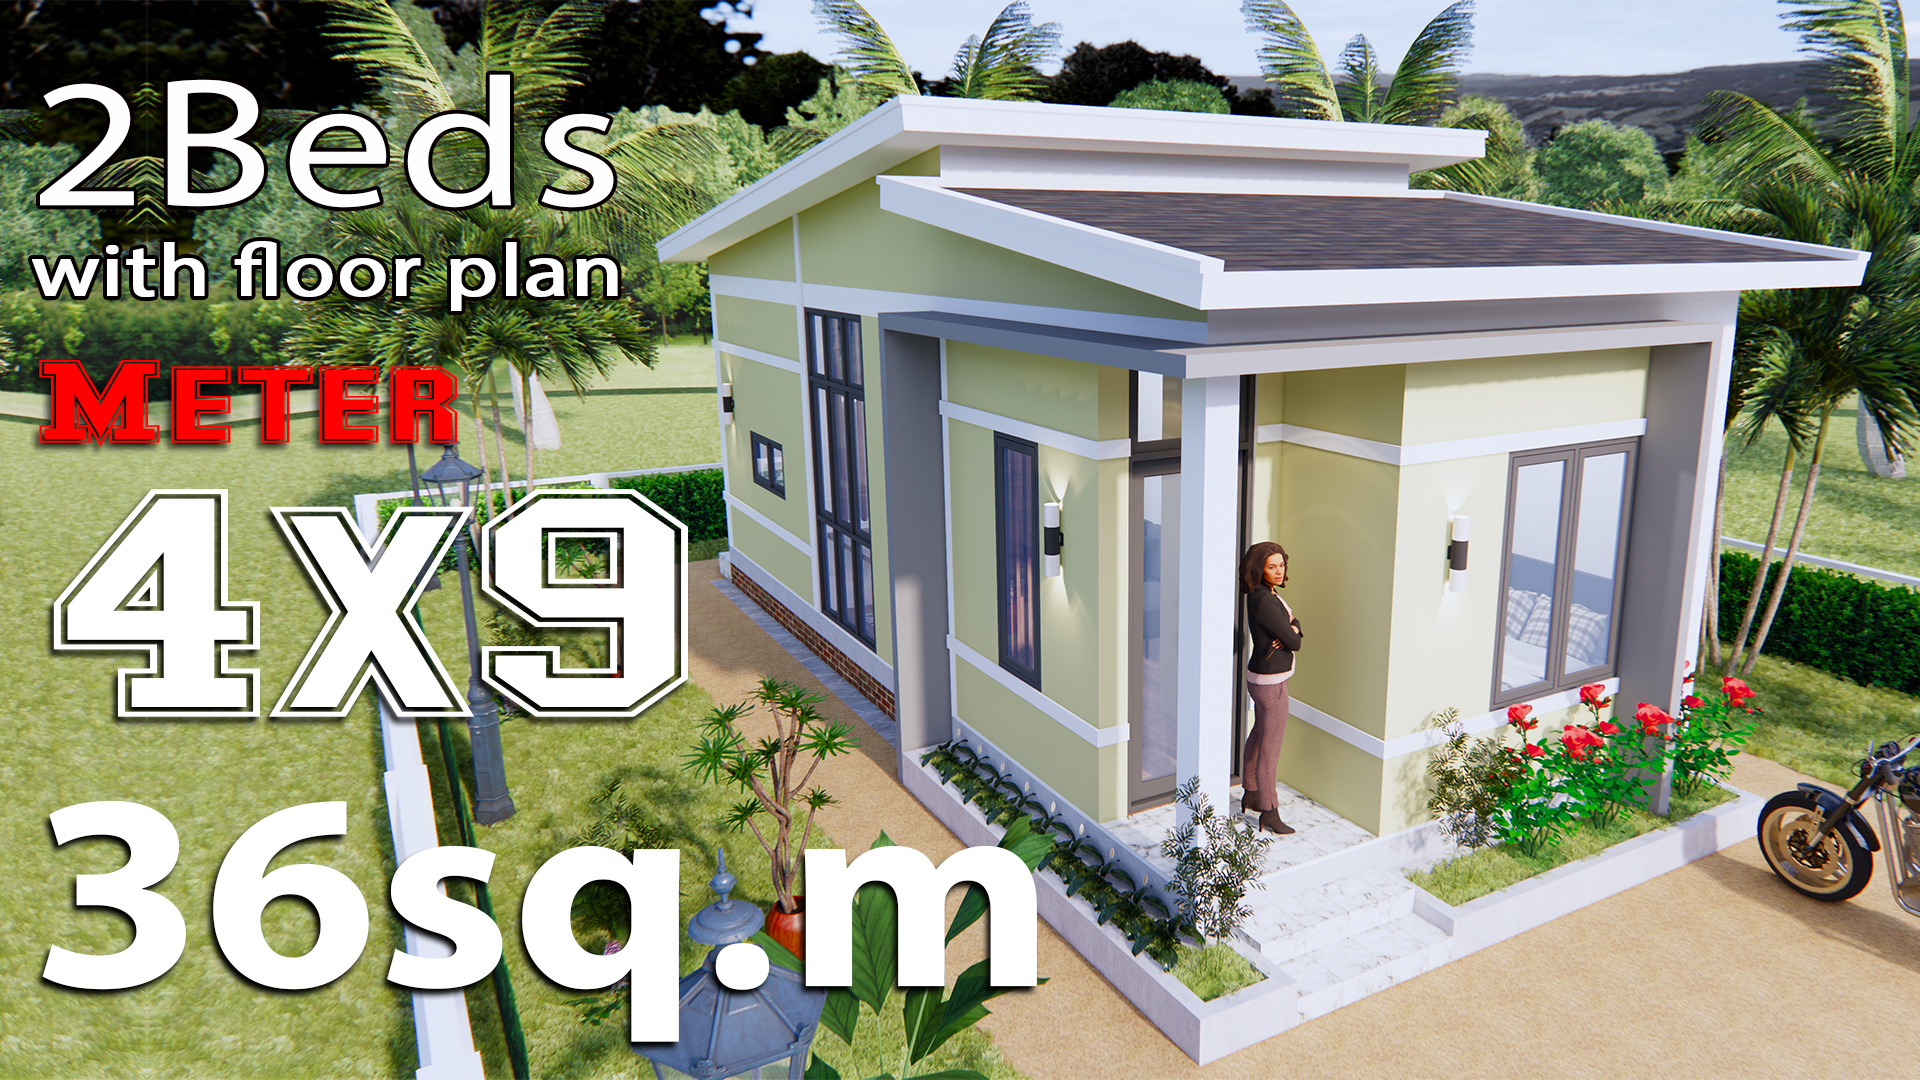 Small House Design Idea 4x9 Meters 36sq M Samhouseplans